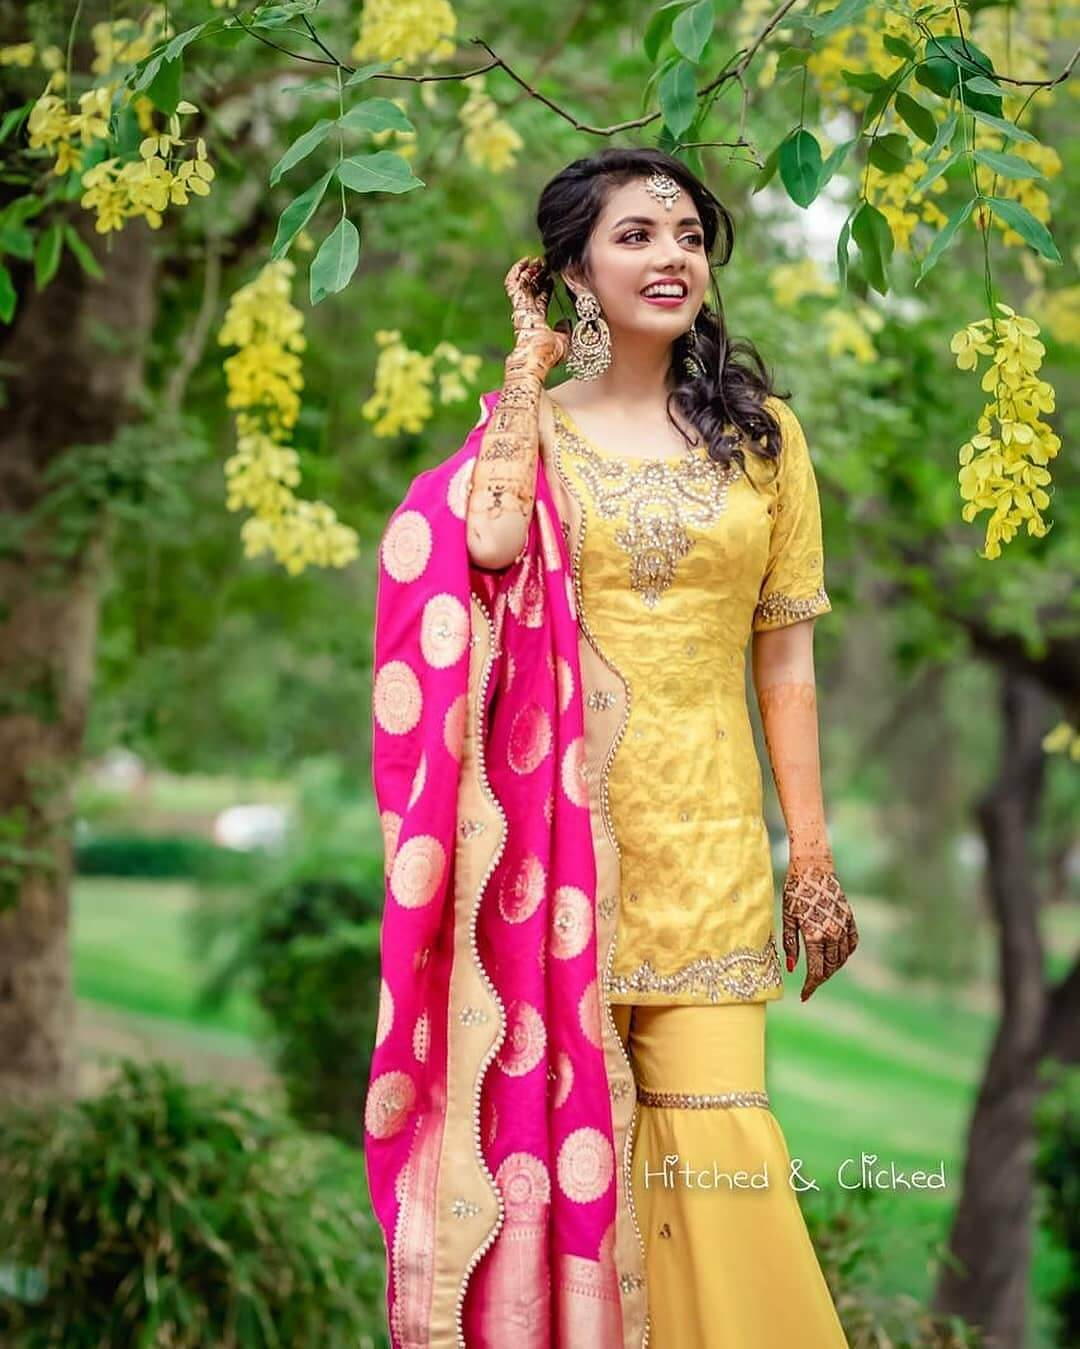 Yellow and Hot pink sharara suit - What do brides wear for Mehndi Function? Know from Real Brides!